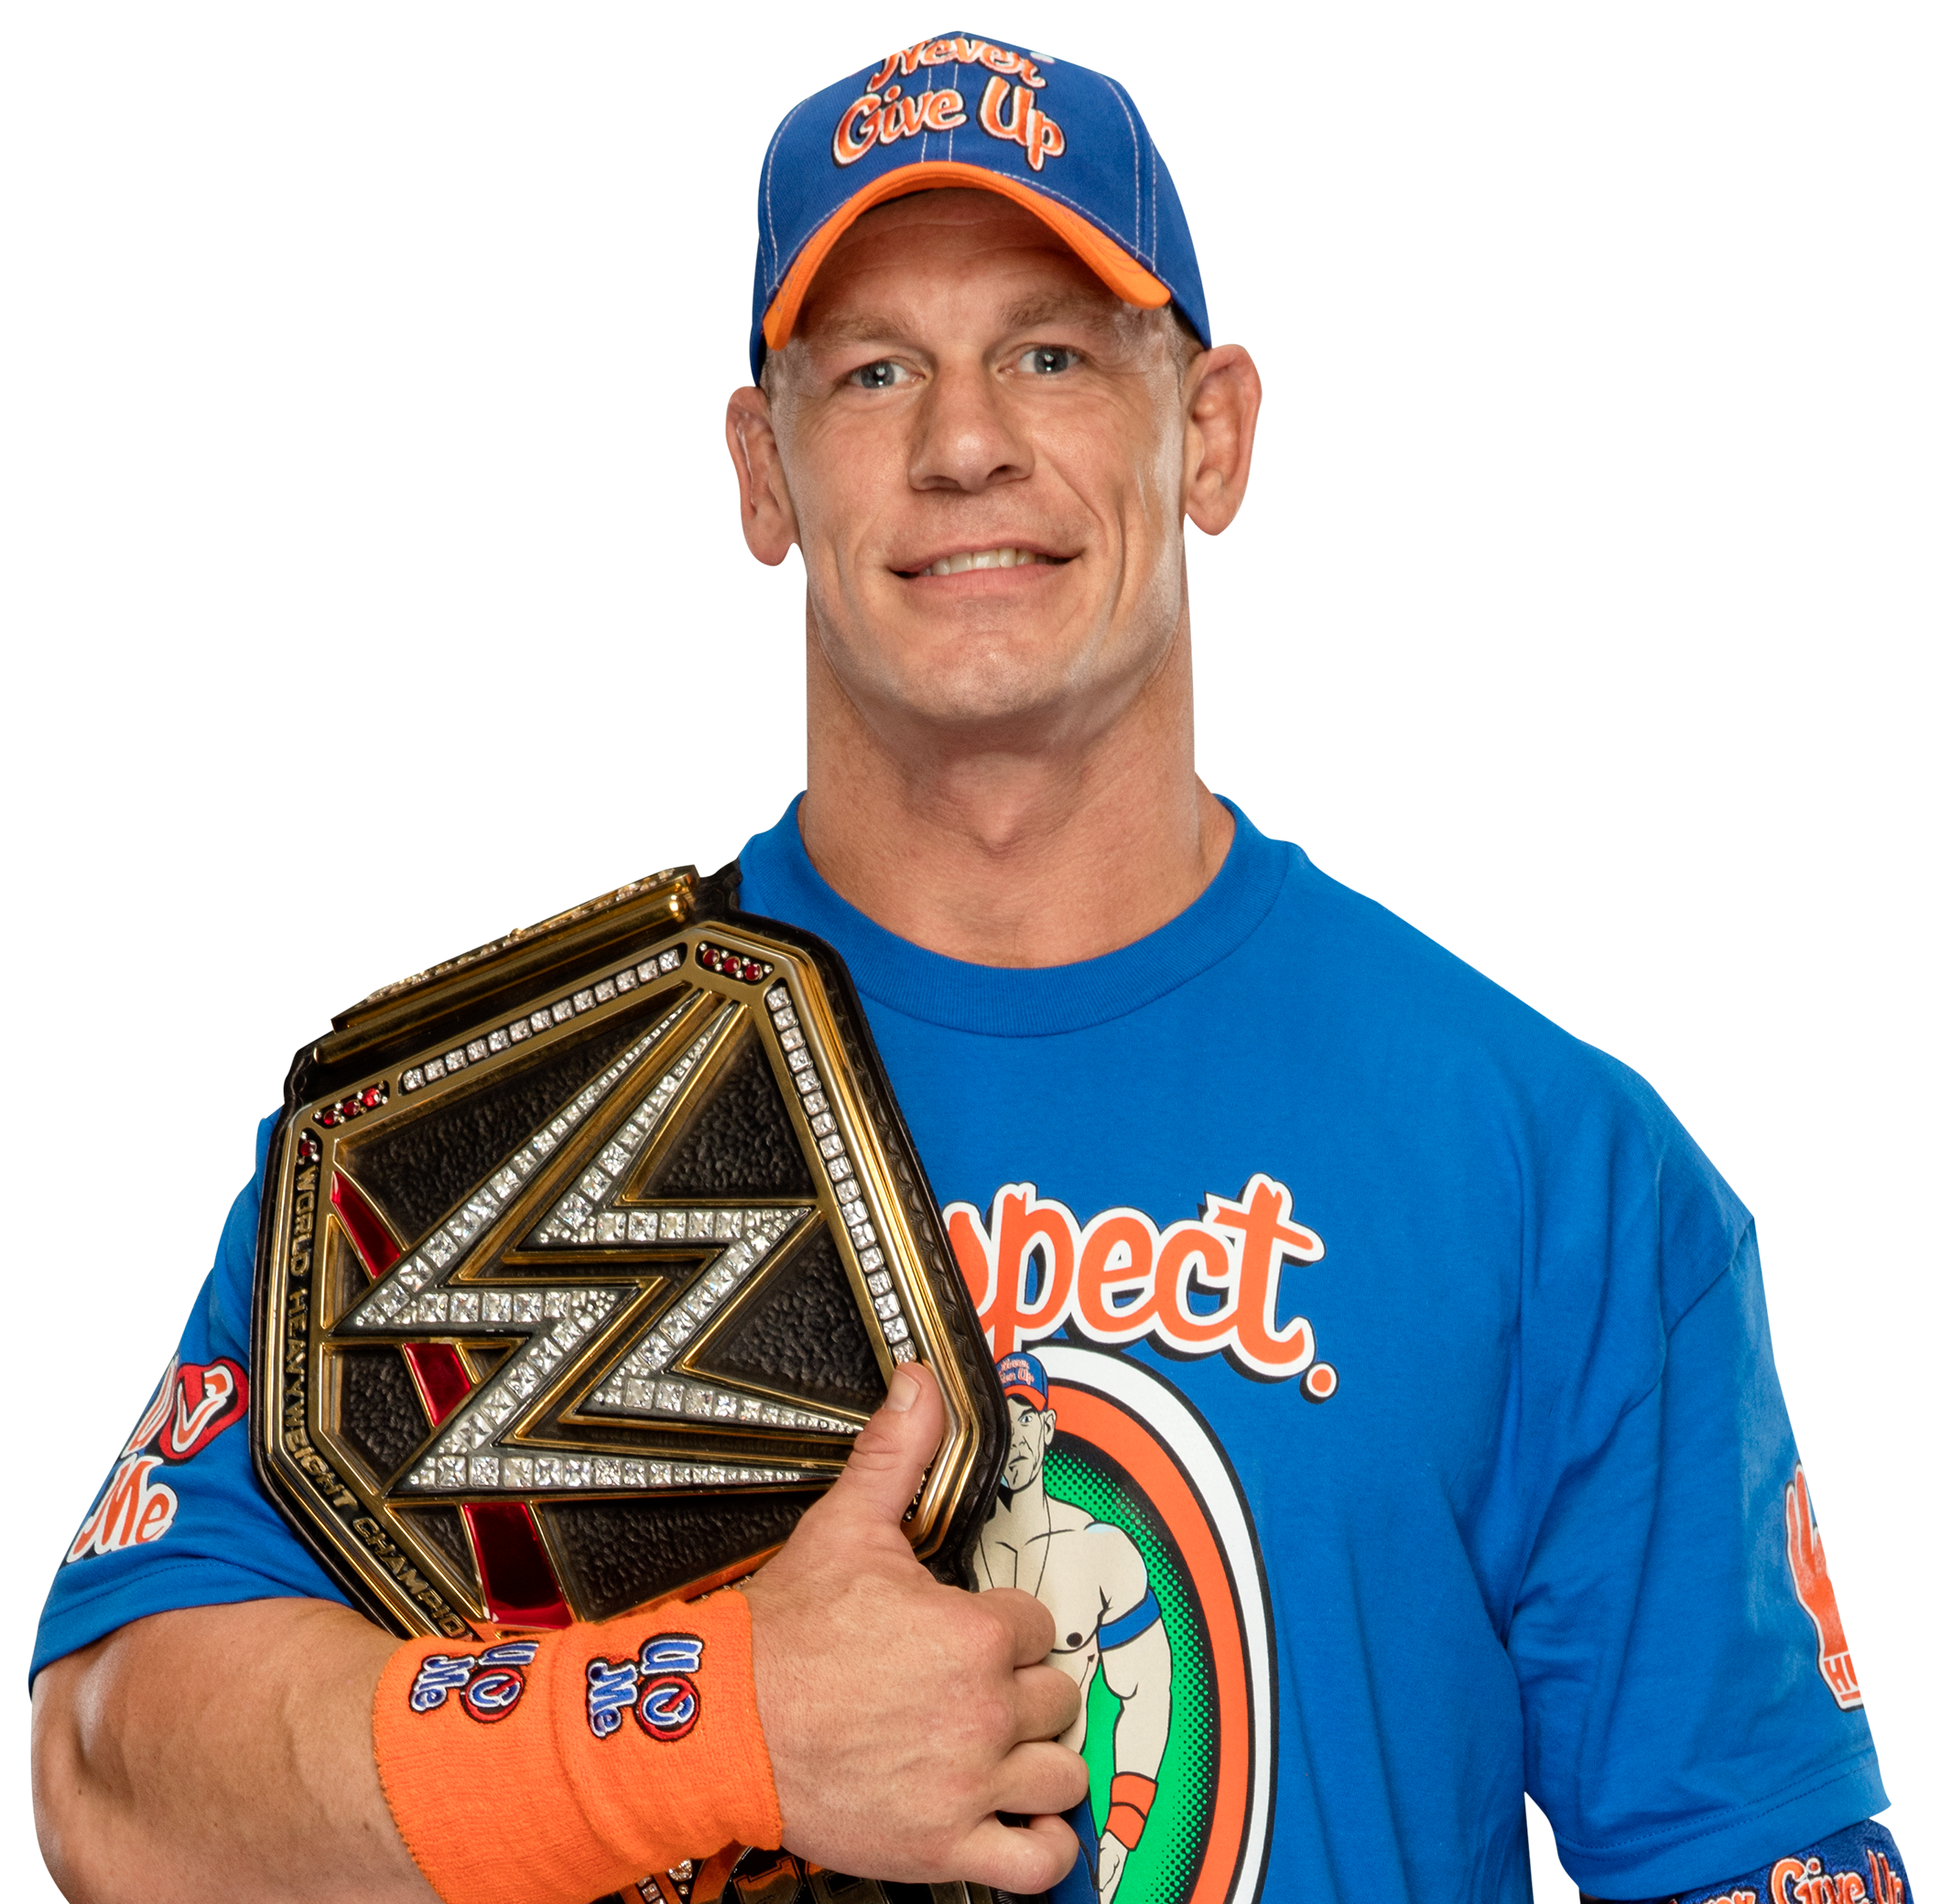 John Cena WWE Champion 2017 by Nibble-T on DeviantArt